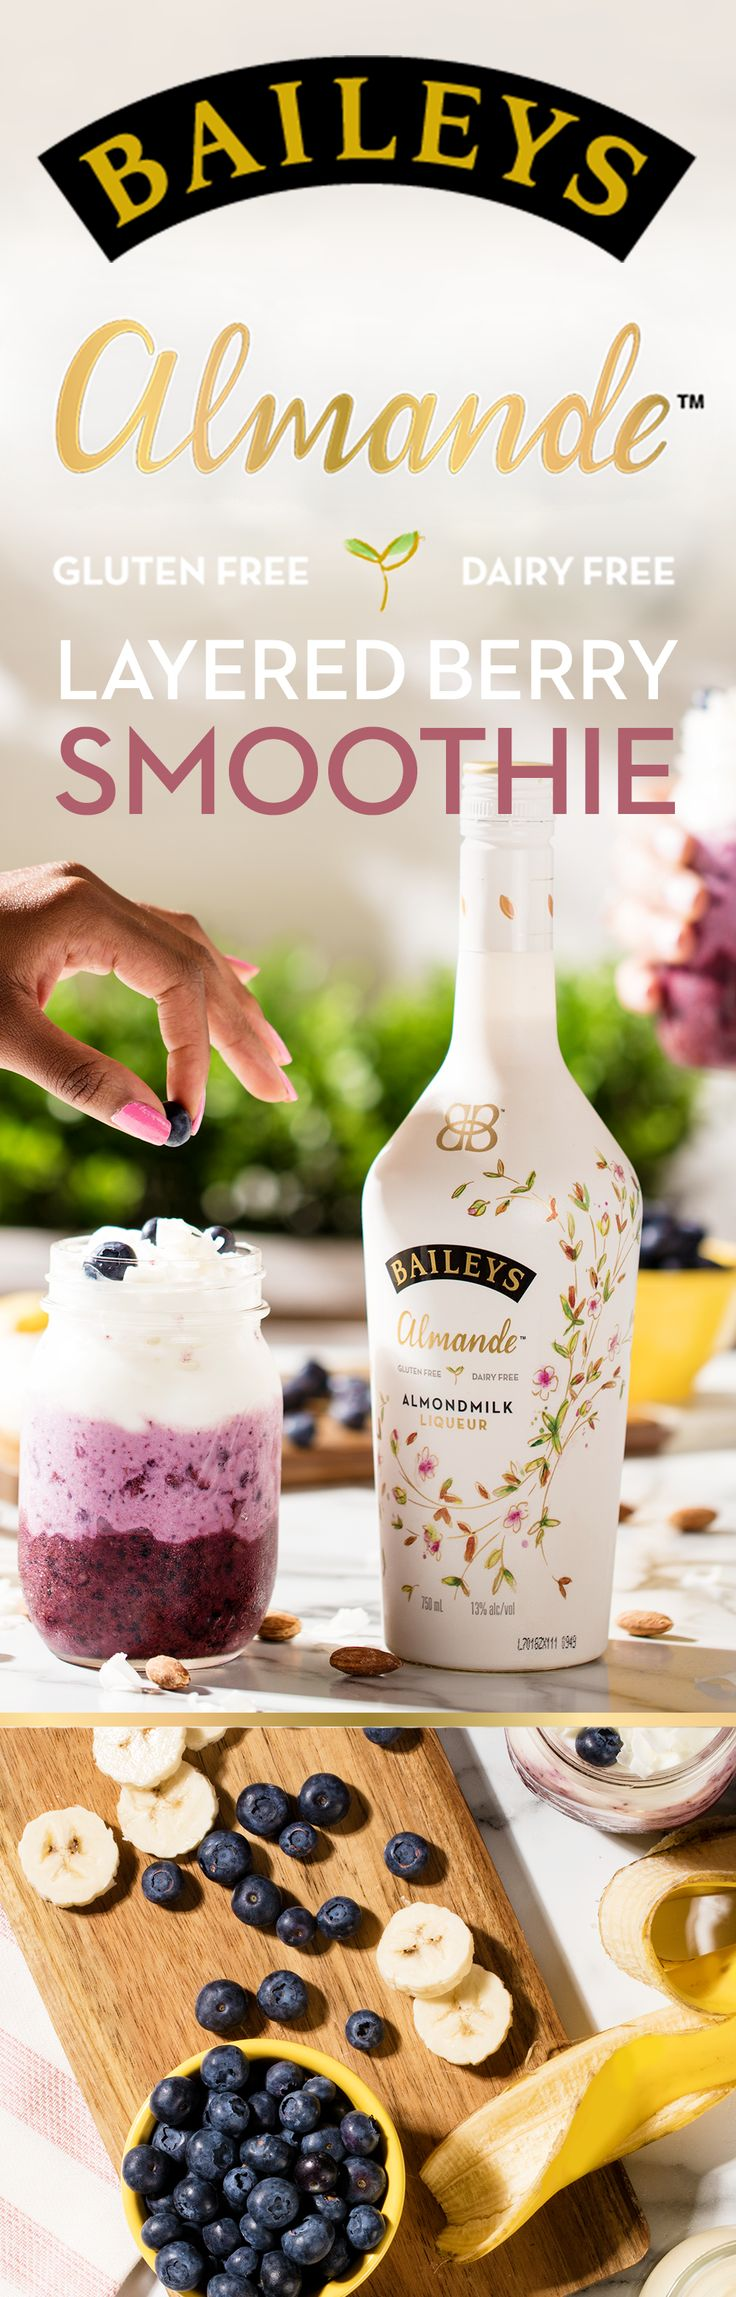 Take a summer staycation with the triple layered berry smoothie, made with our dairy free, gluten free, and vegan almondmilk liqueur. Bottom layer: blend 1.5 oz. Baileys Almande, 1/2 cup dairy free greek yogurt, and 1 cup frozen blueberries. Middle layer: http://juicymaker.com/